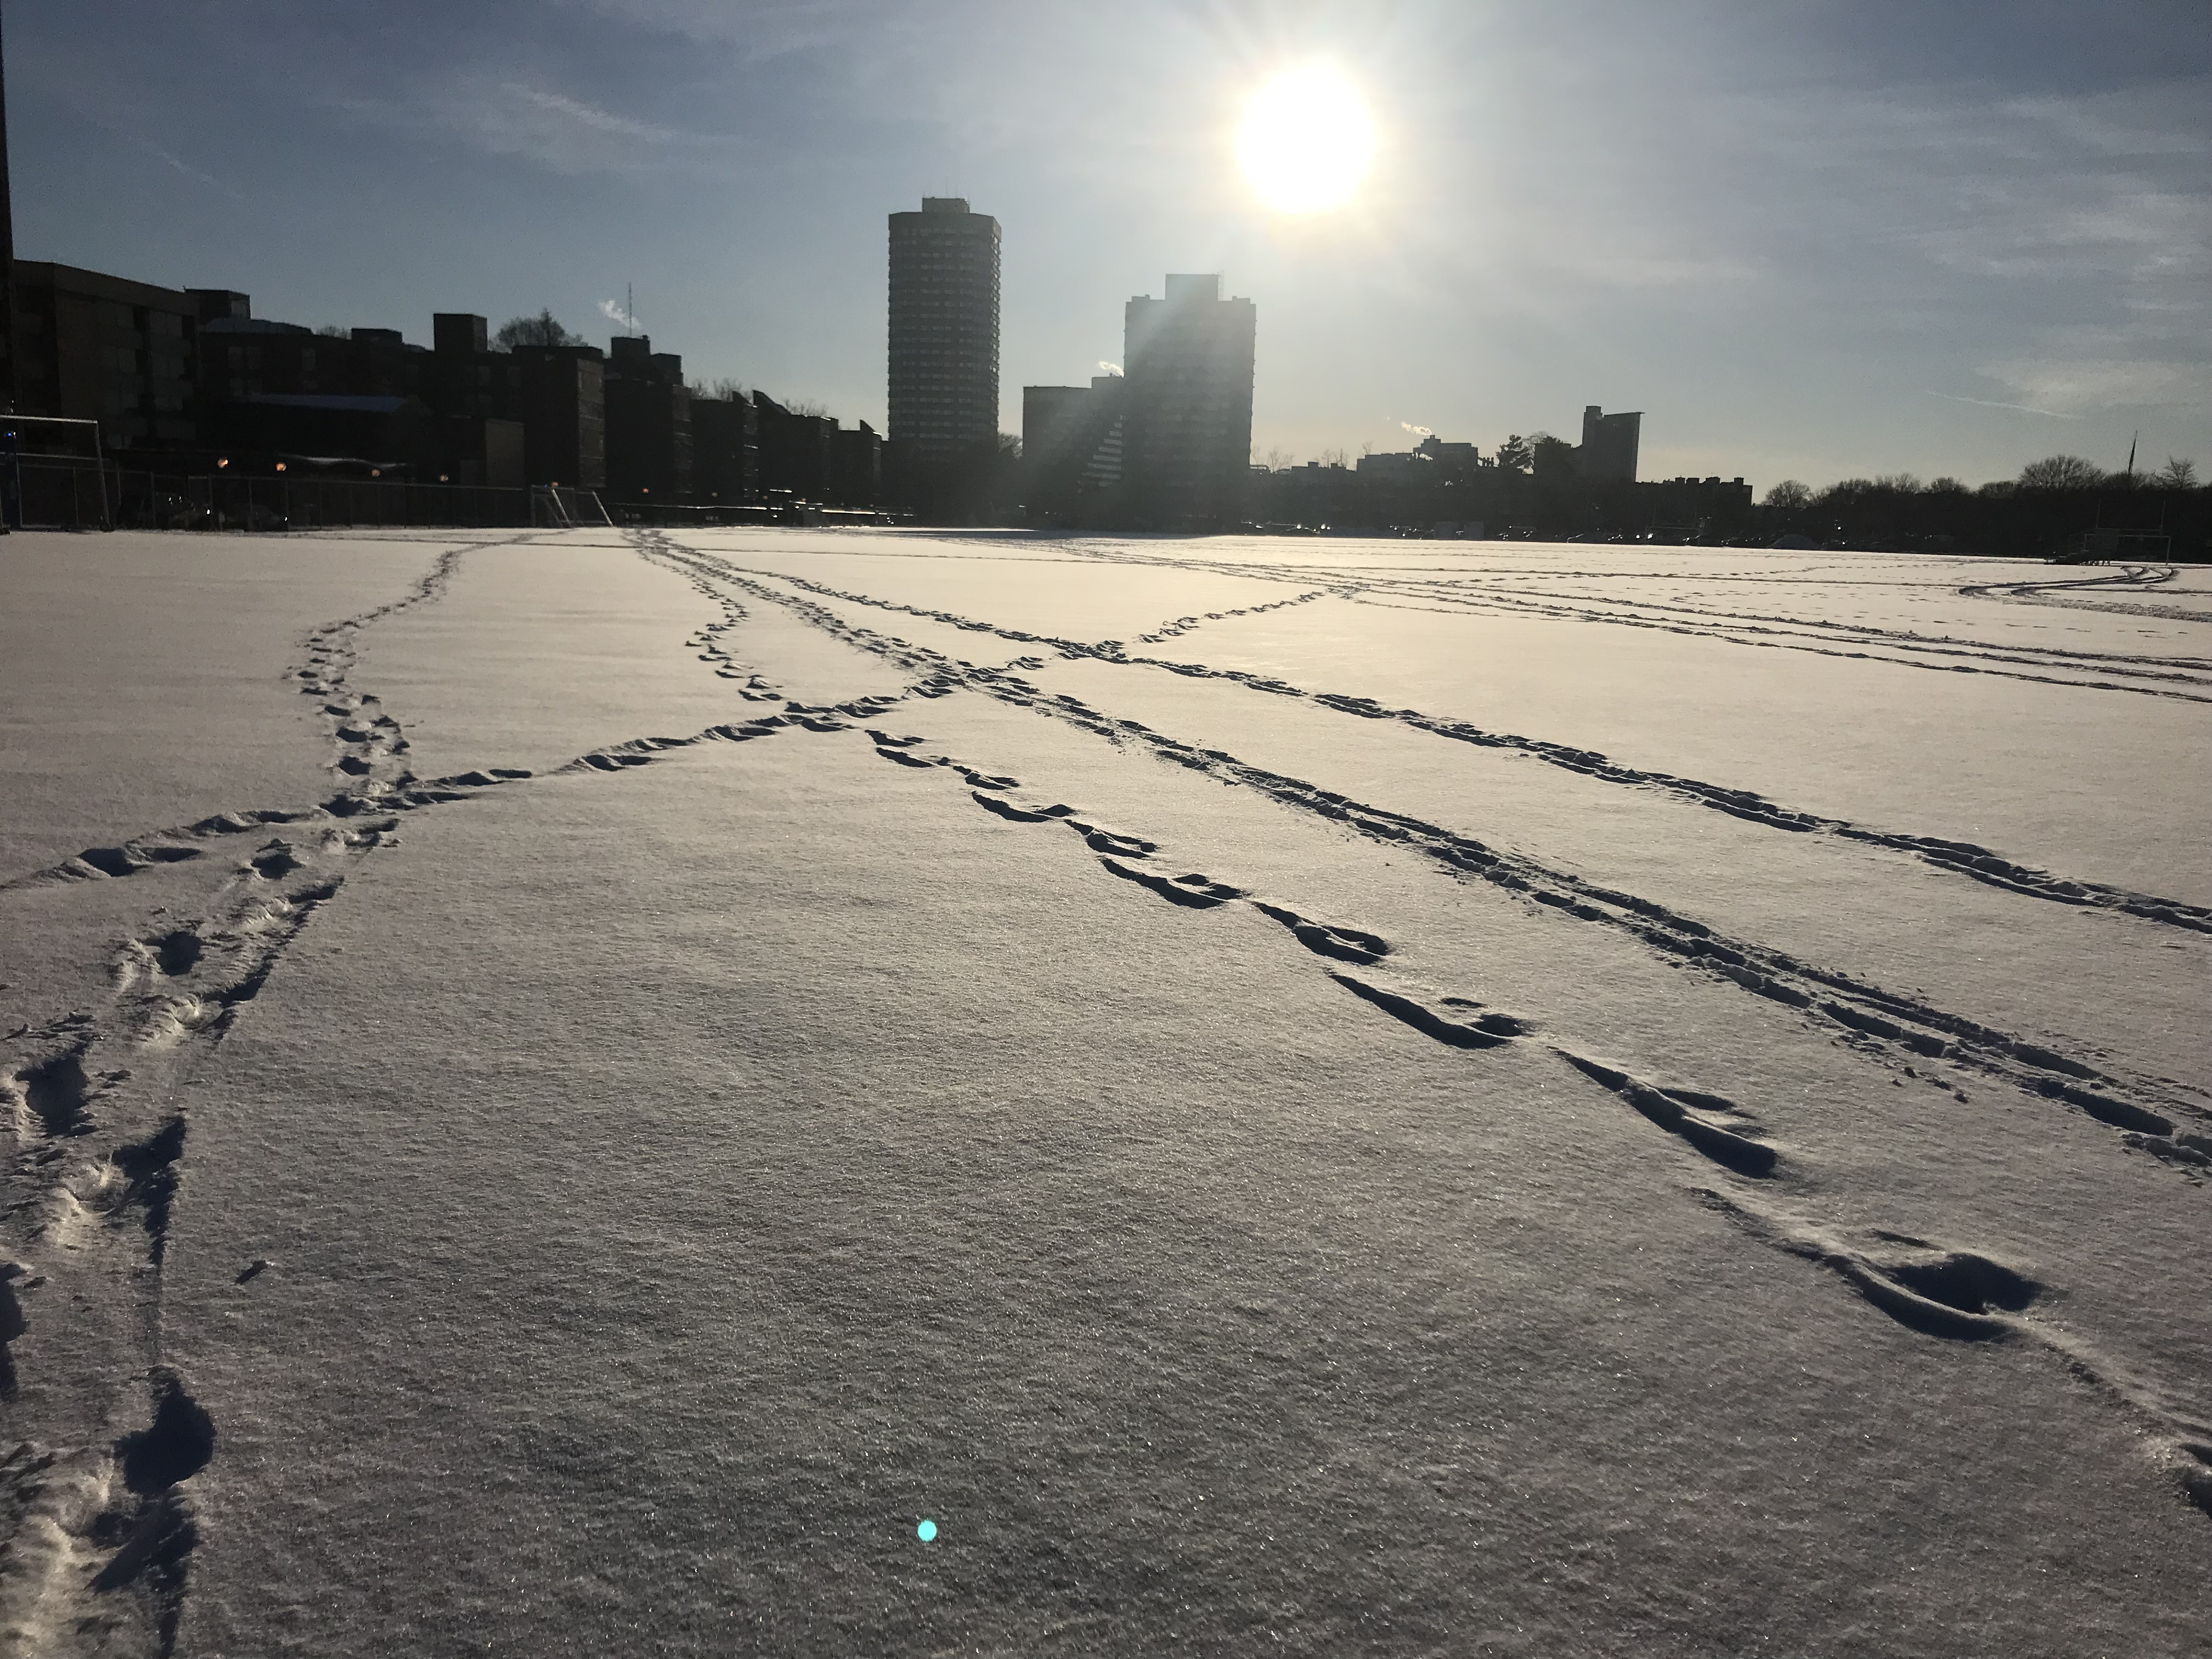 snow on the football field with footprints